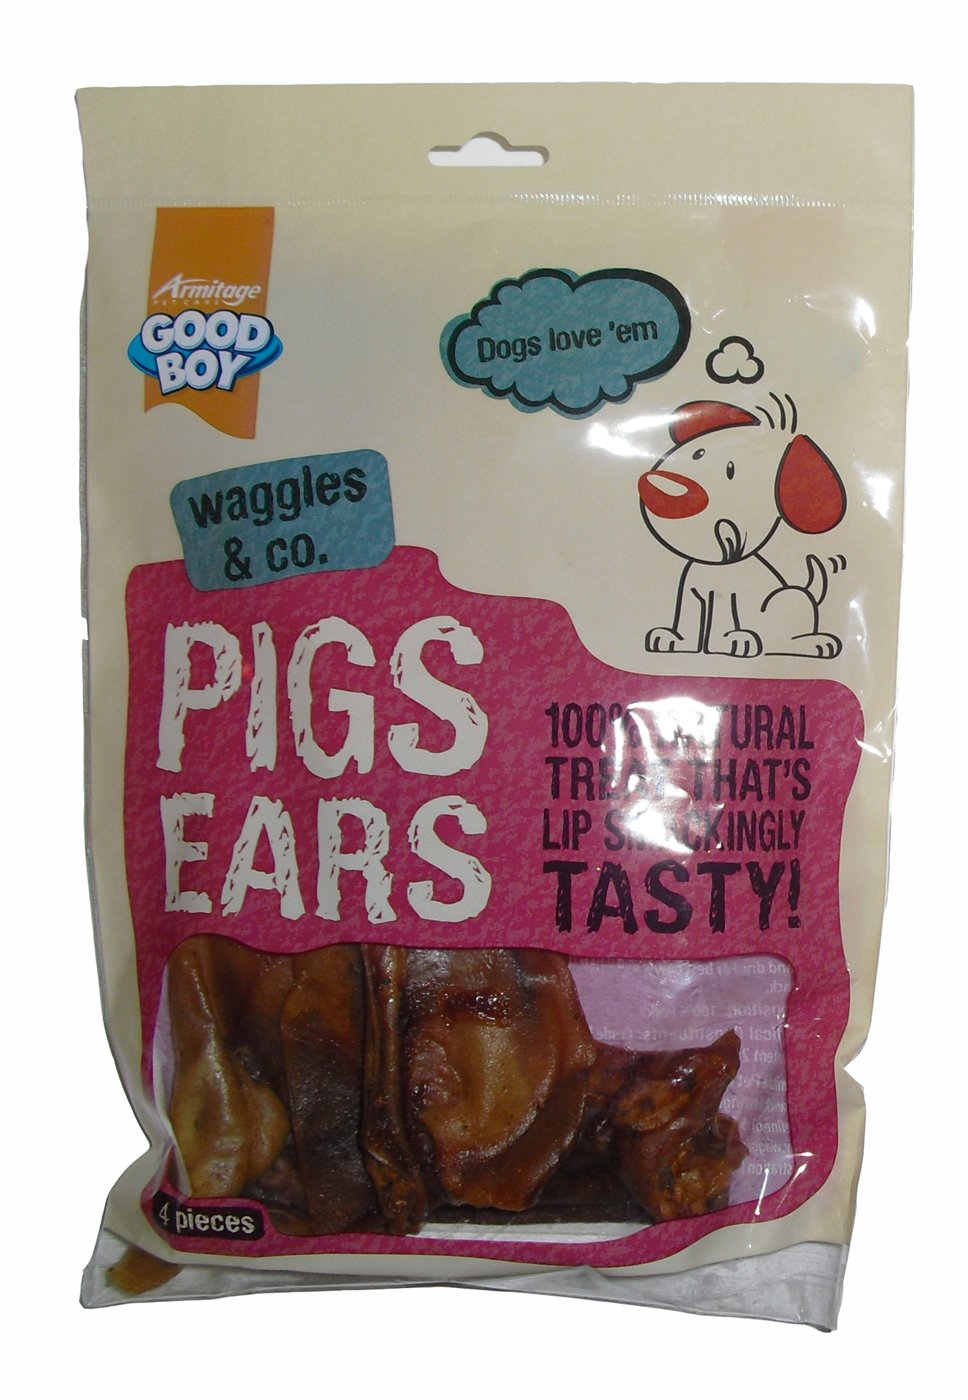 Good Boy Waggles & Co Pigs Ears 4 Pack 60g (Pack of 8)